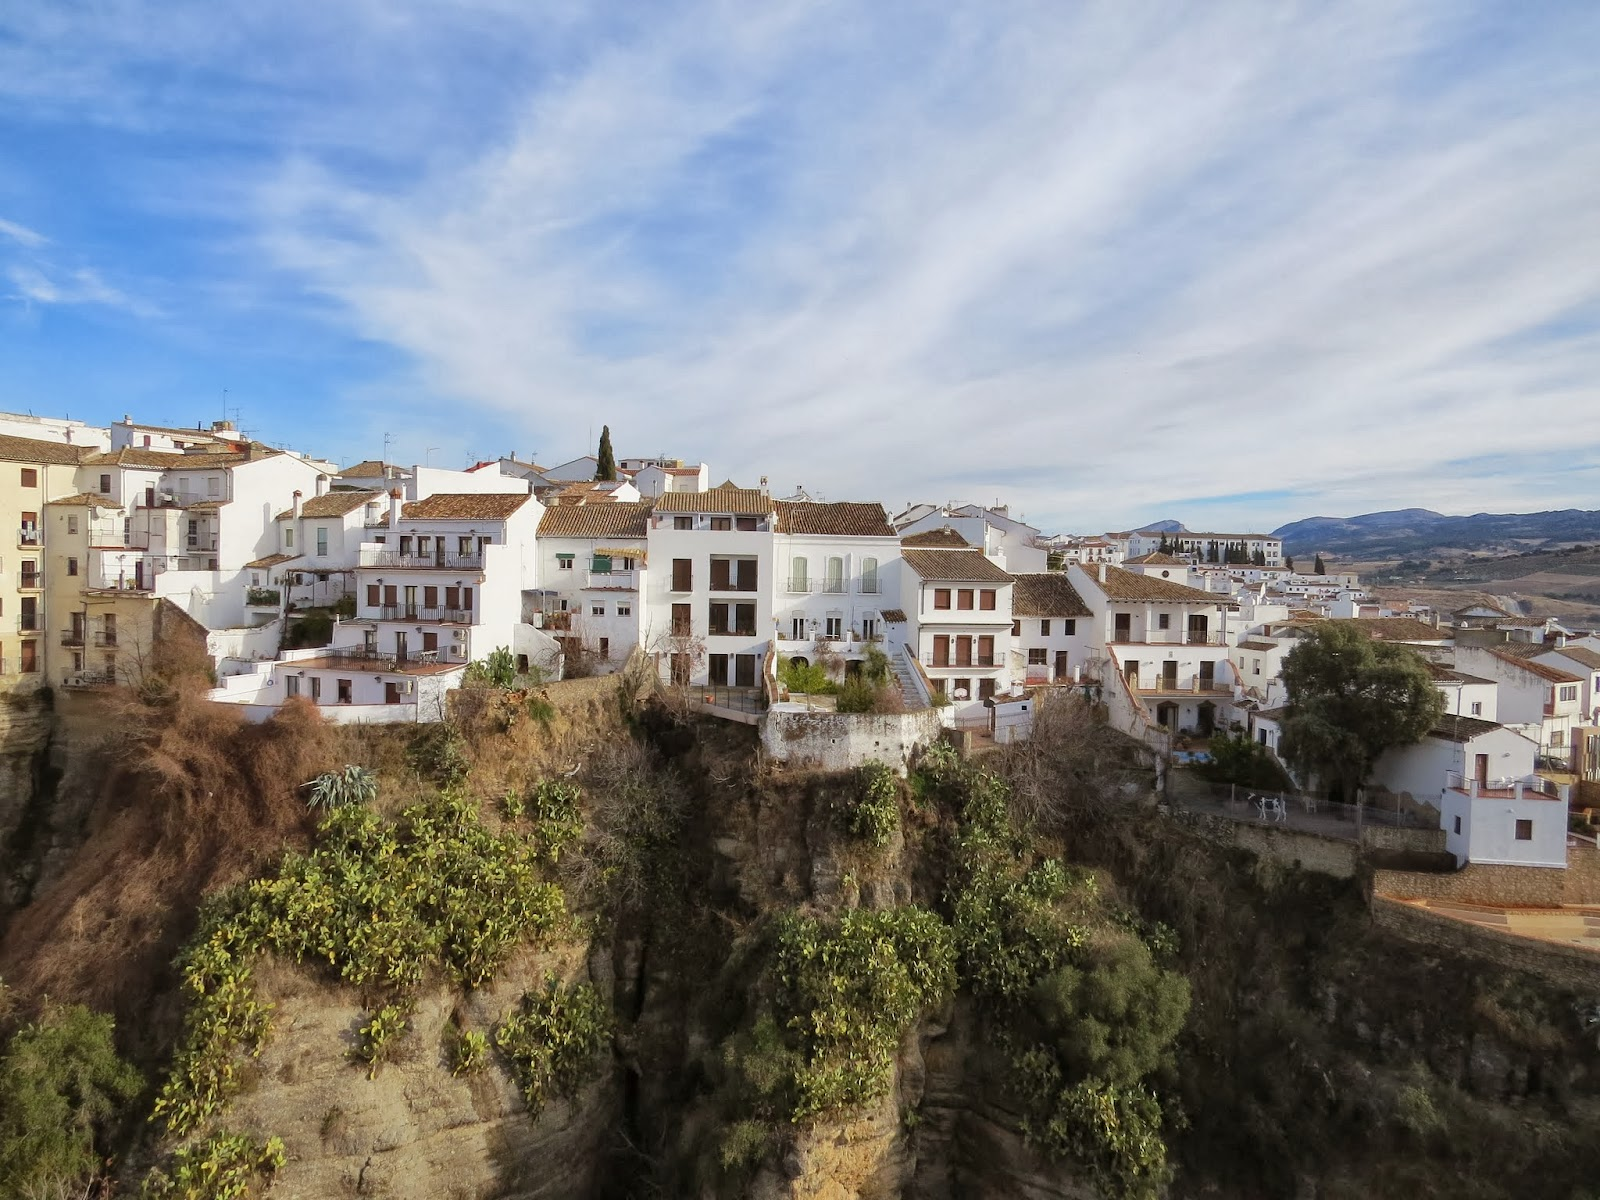 White-washed buildings in Ronda, Spain